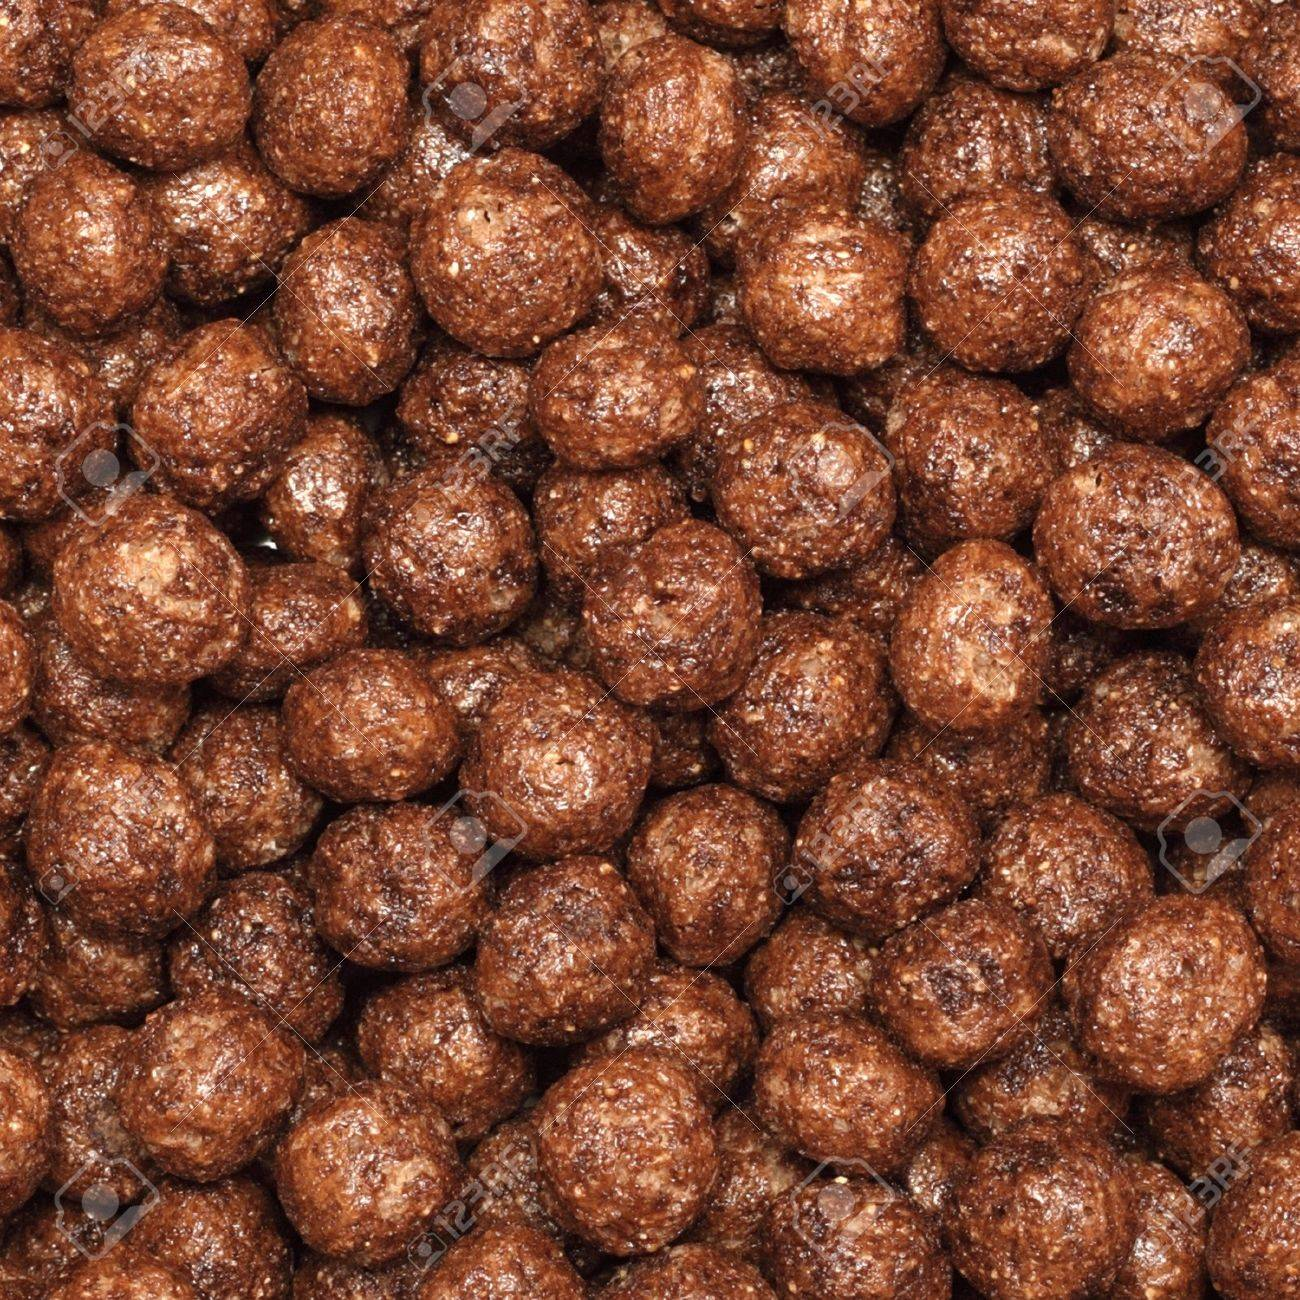 Abstract Background - Chocolate Cereal Balls (closeup) Stock Photo ...